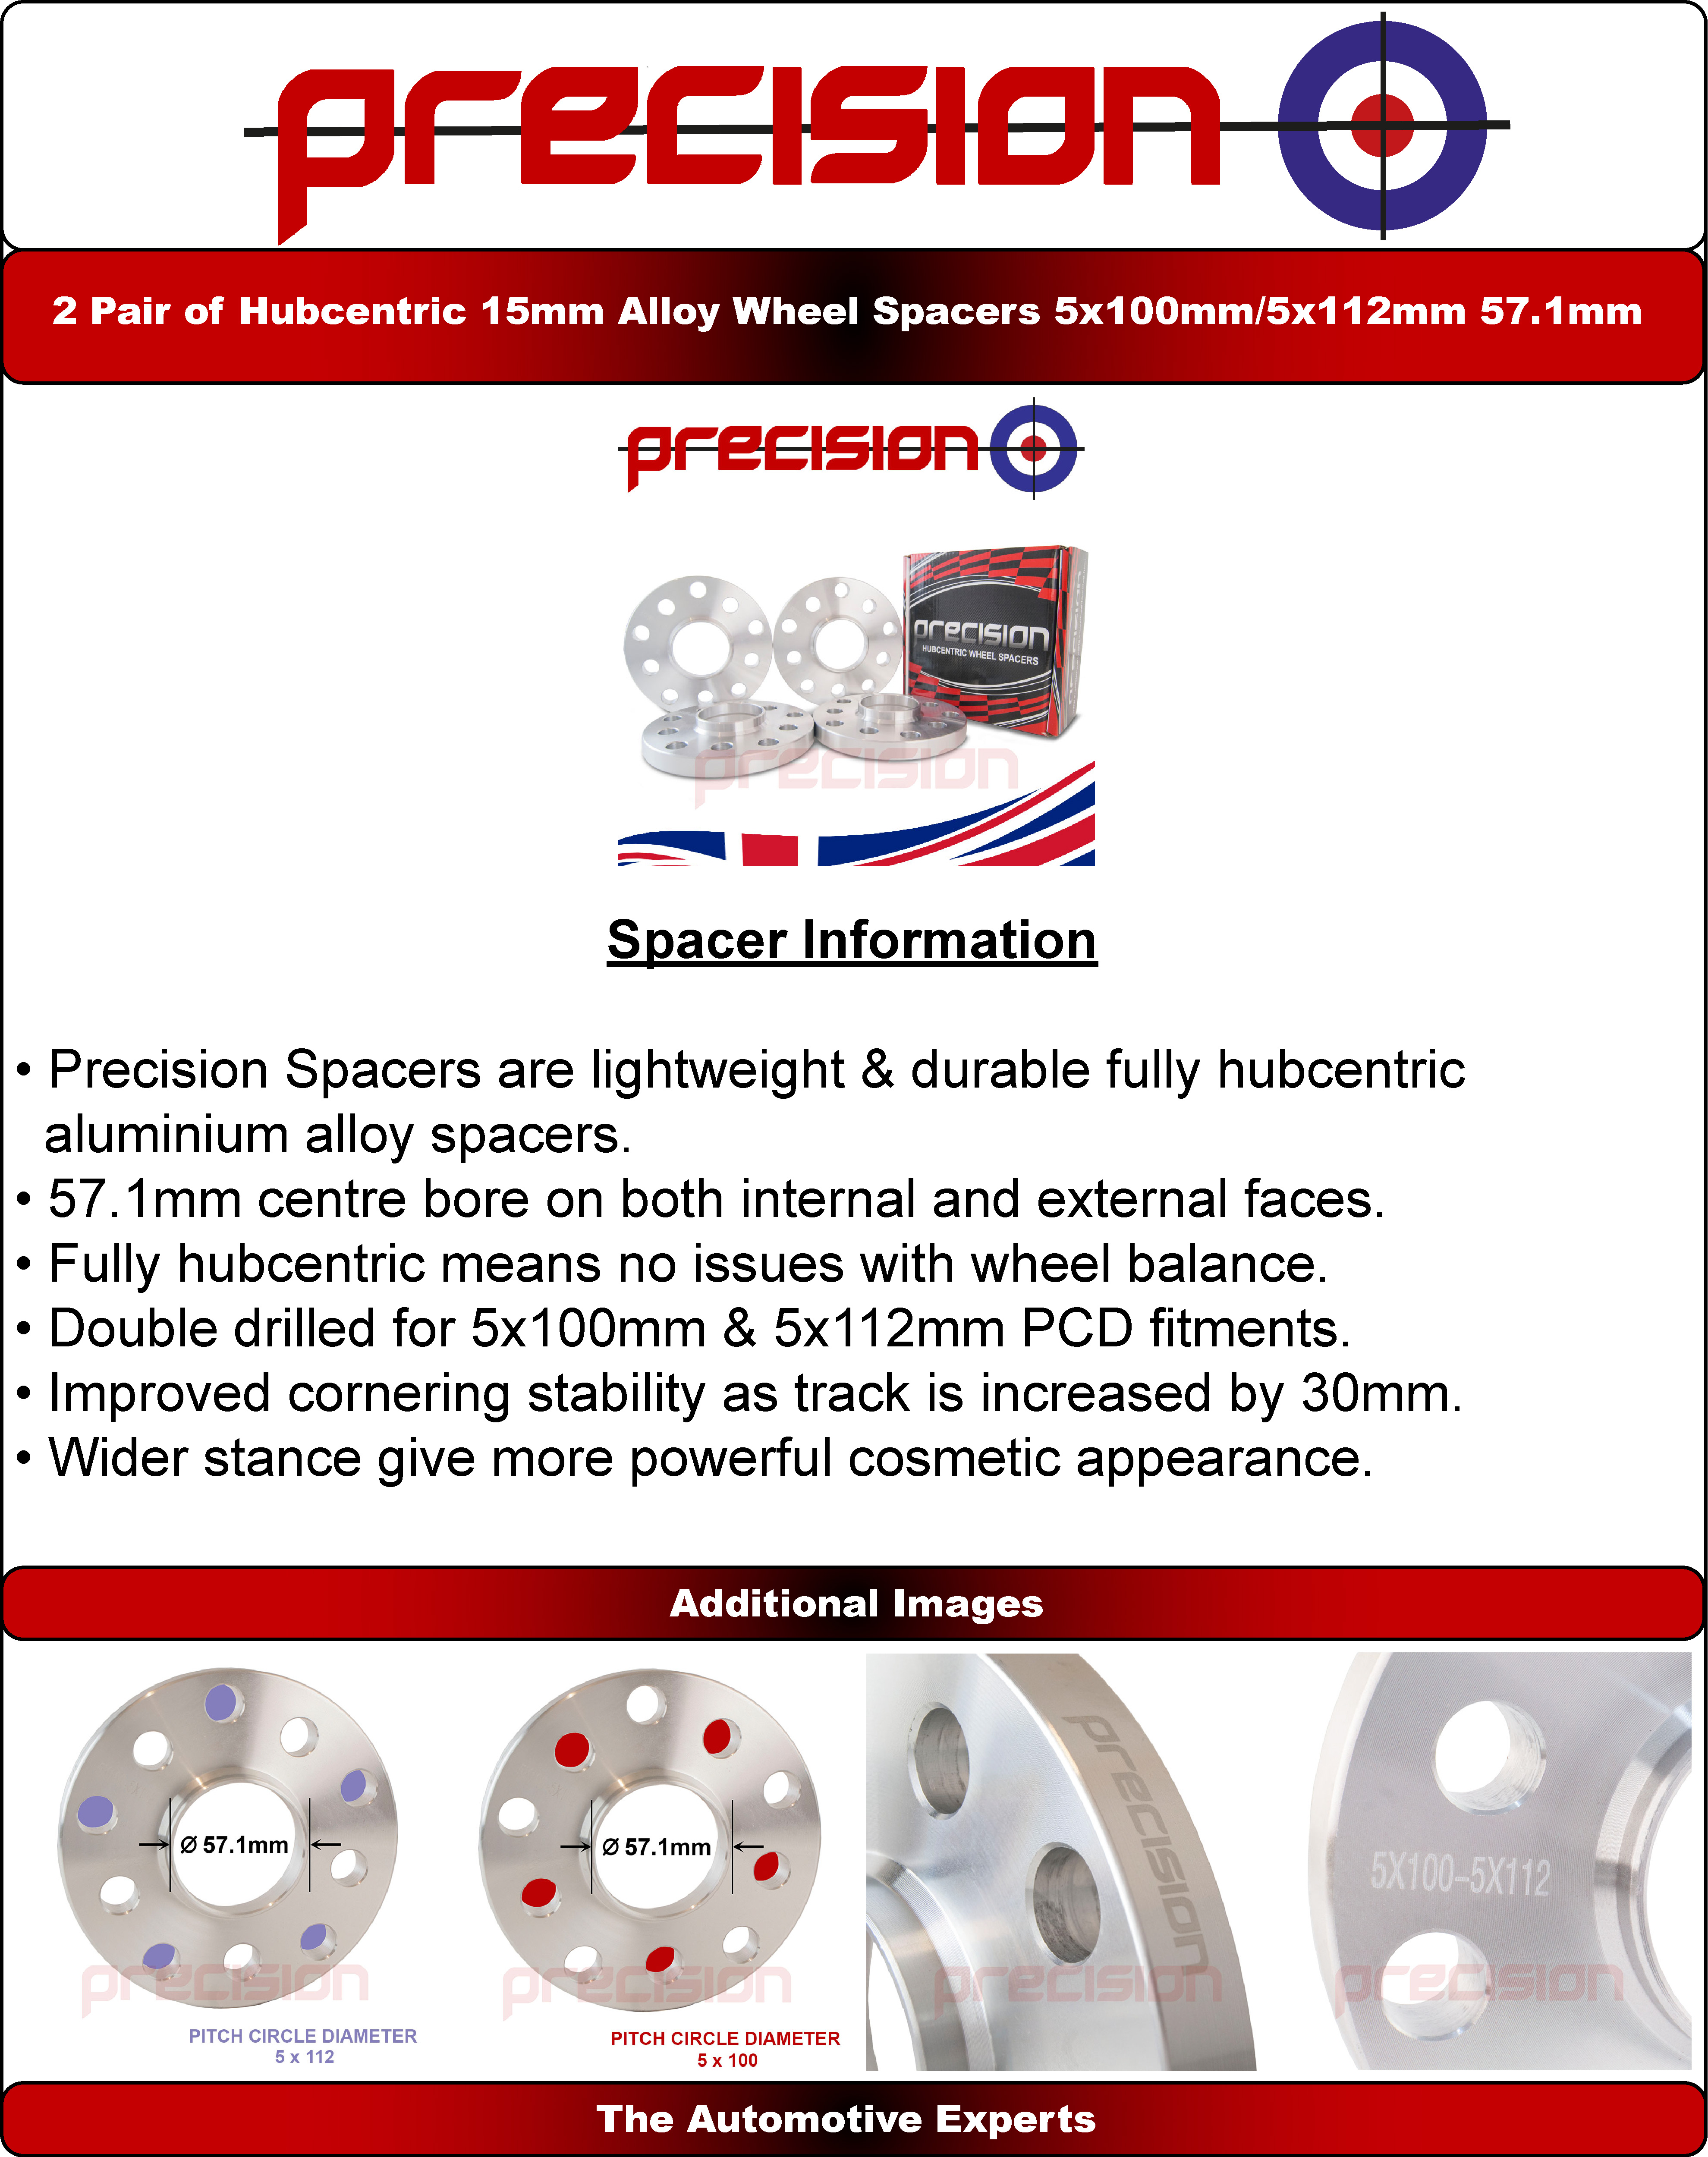 Wheel-Spacers-15mm-Hubcentric-2-Pair-for-Audi-TT-Roadster-1999-2006 thumbnail 6